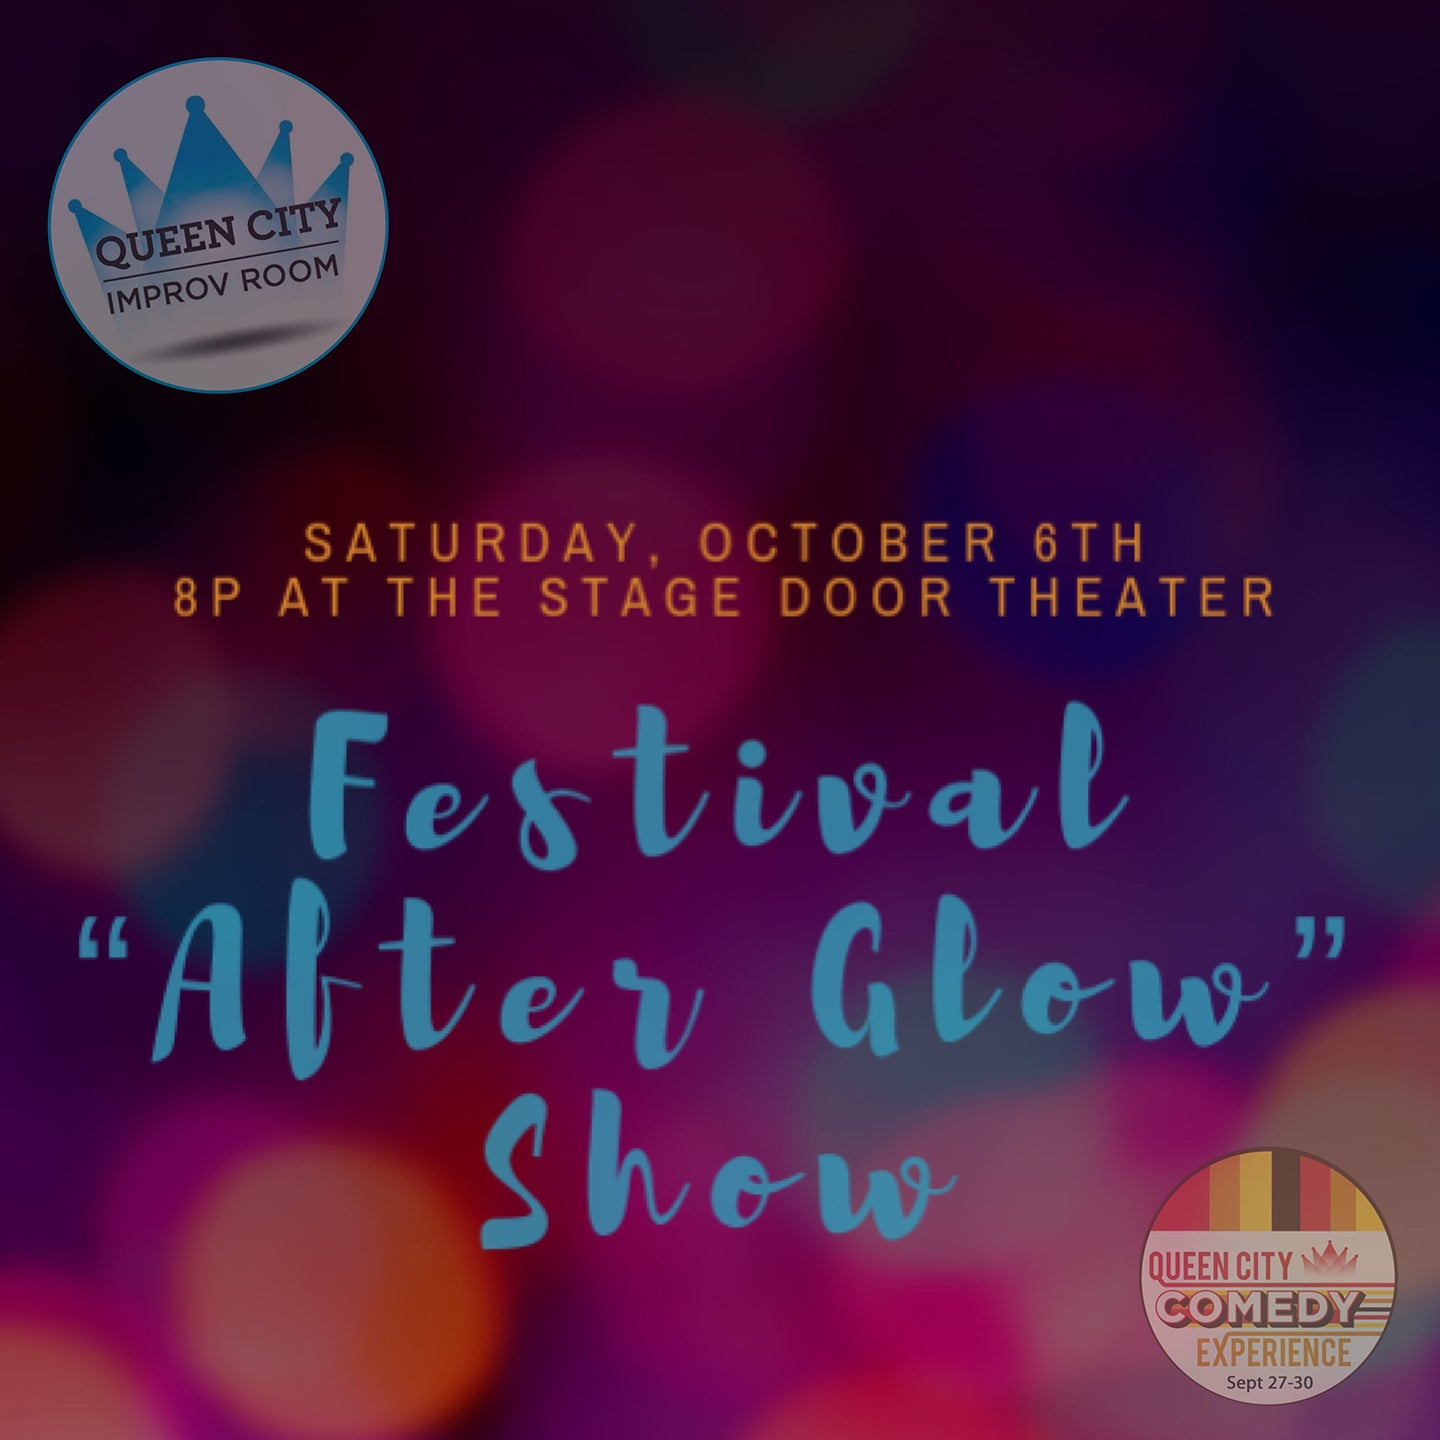 Queen City Improv Room: Festival Afterglow Show